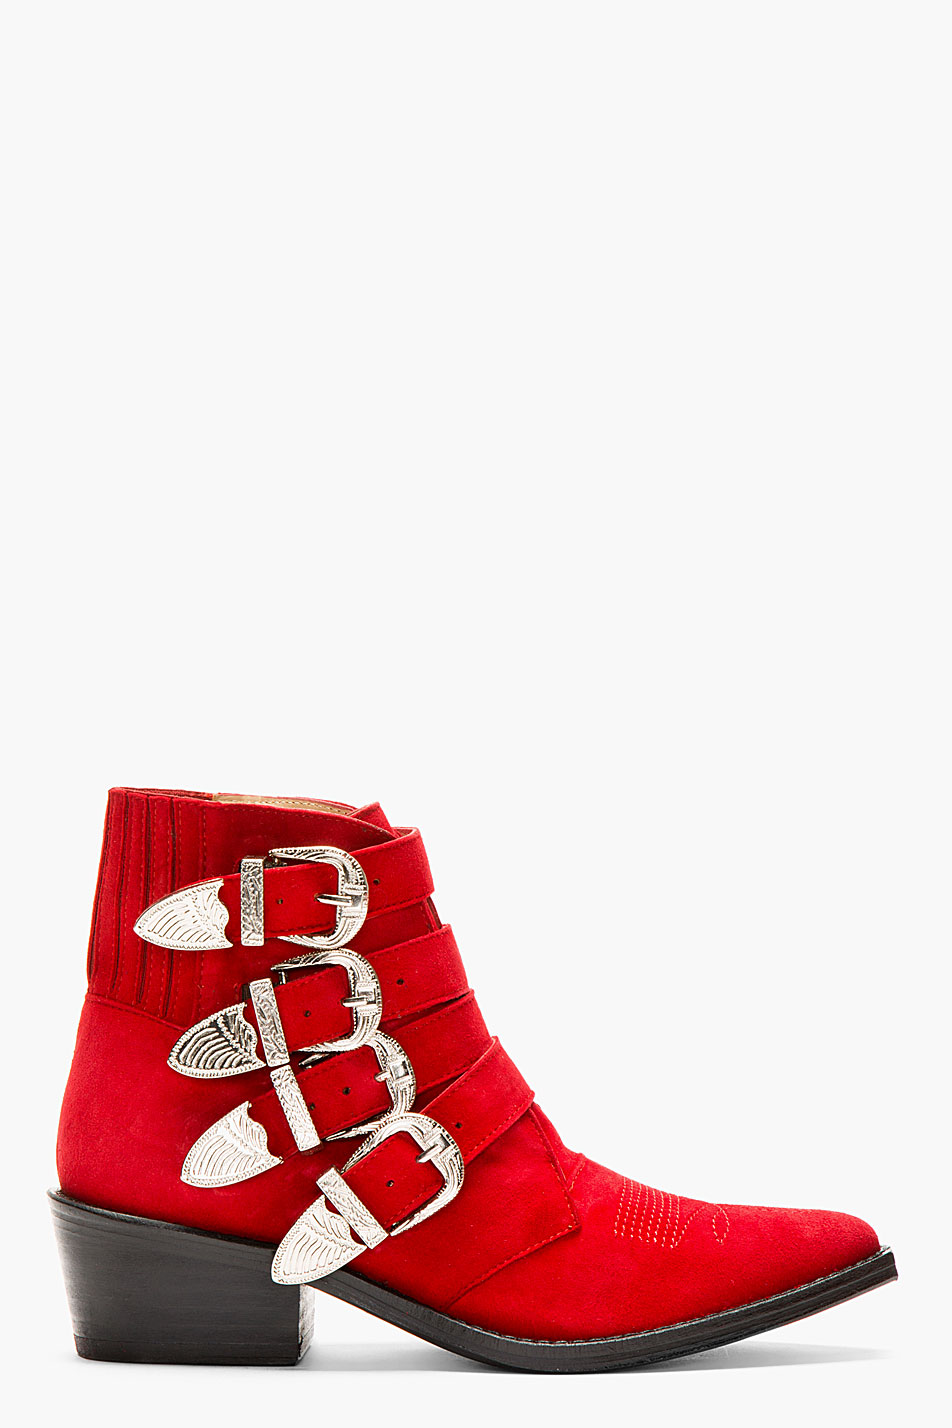 Toga pulla red suede western buckle boot